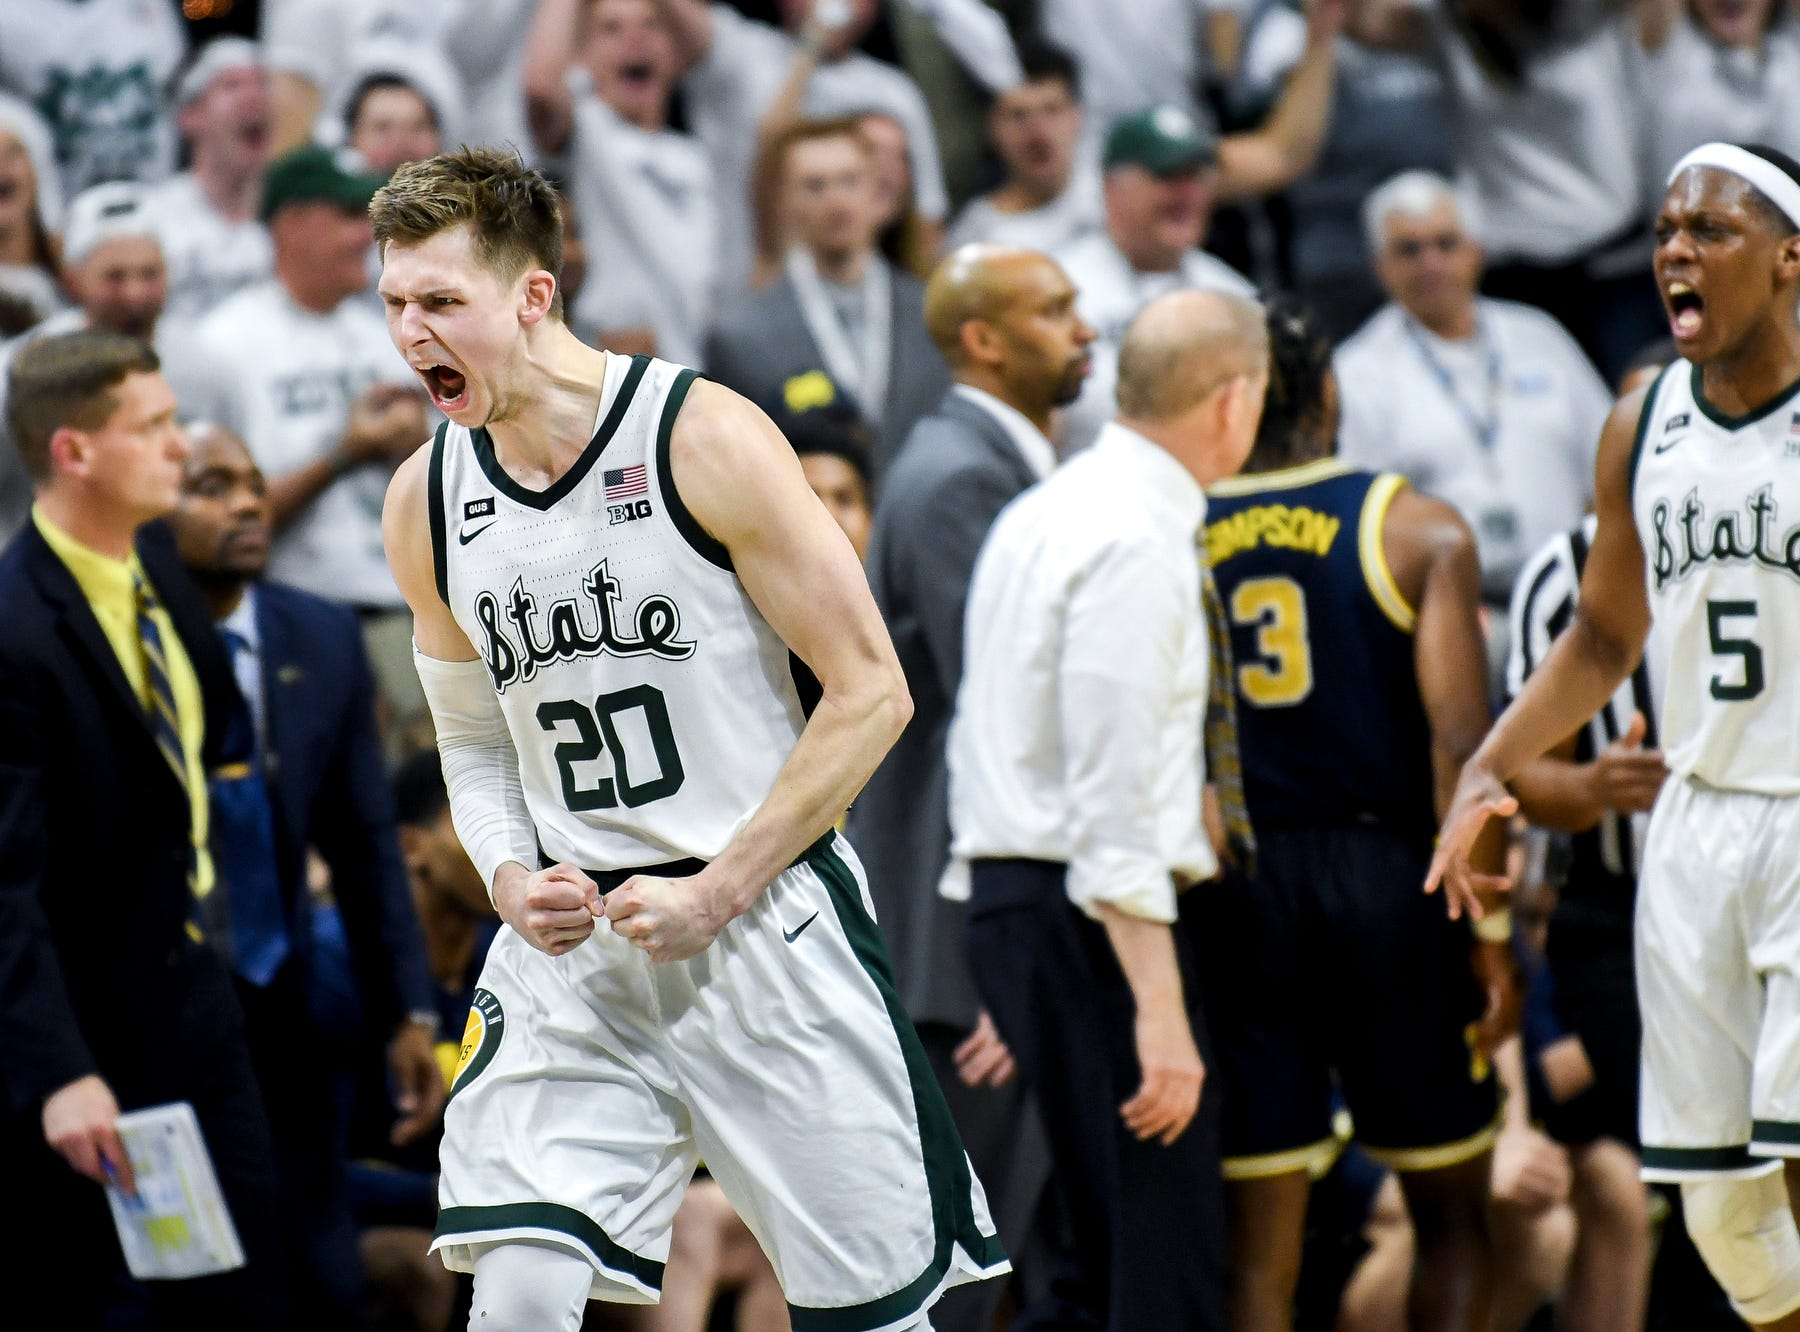 Michigan State's Matt McQuaid celebrates during a timeout  during the second half on Saturday, March 9, 2019, at the Breslin Center in East Lansing.